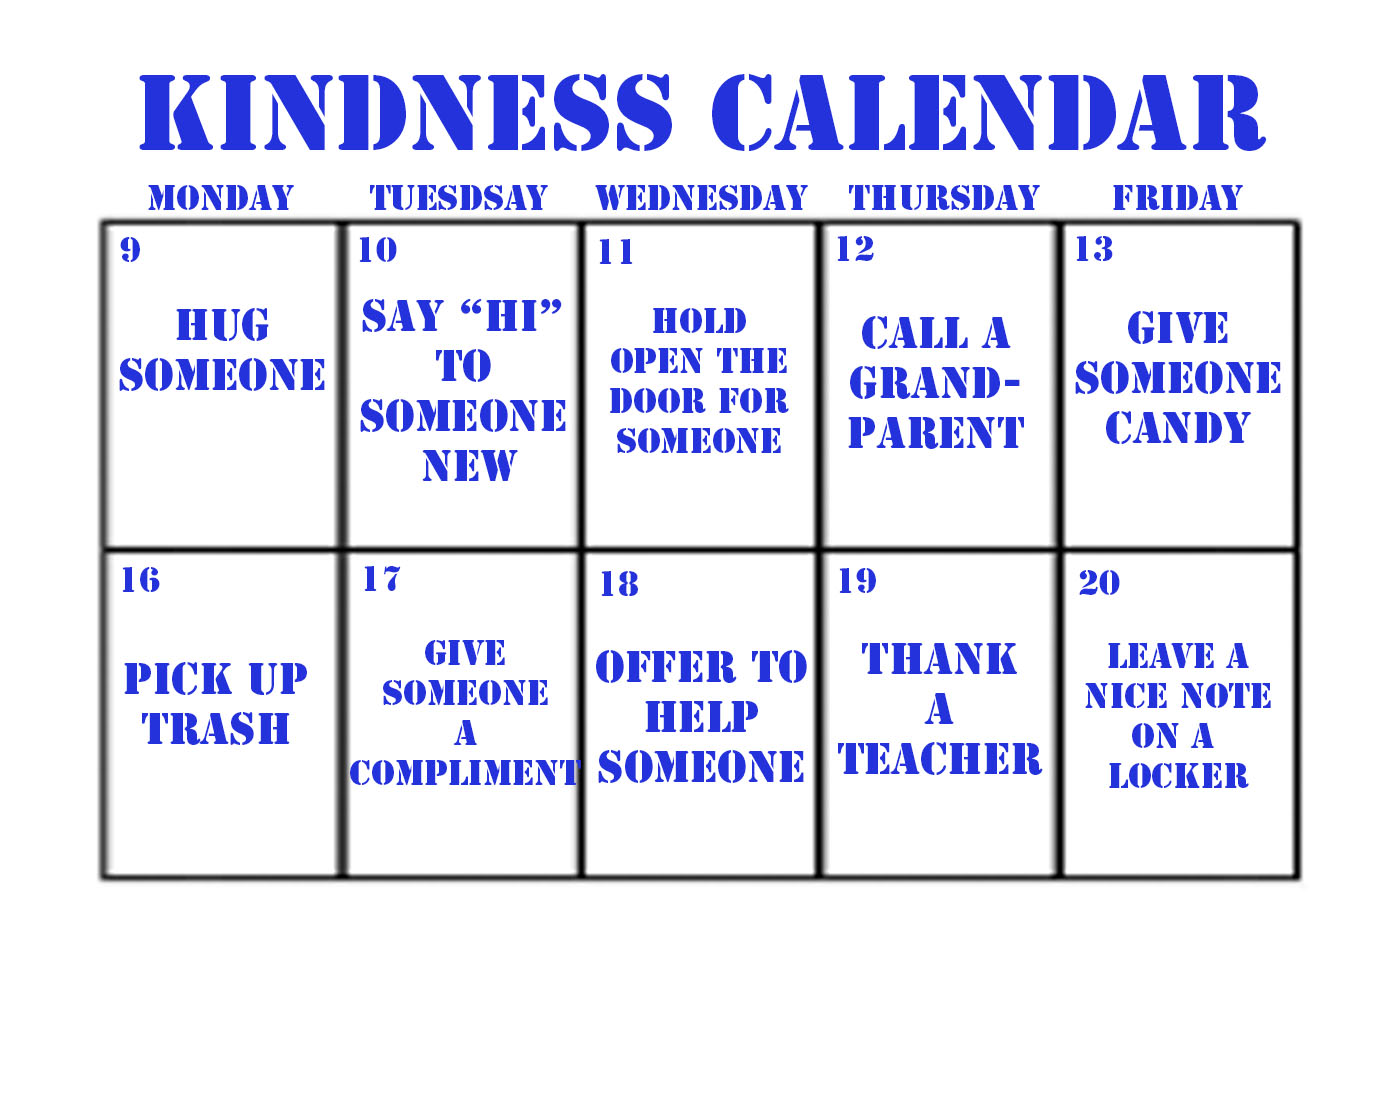 OHS Magnet is hoping that the community can spread a little kindness during the month of December